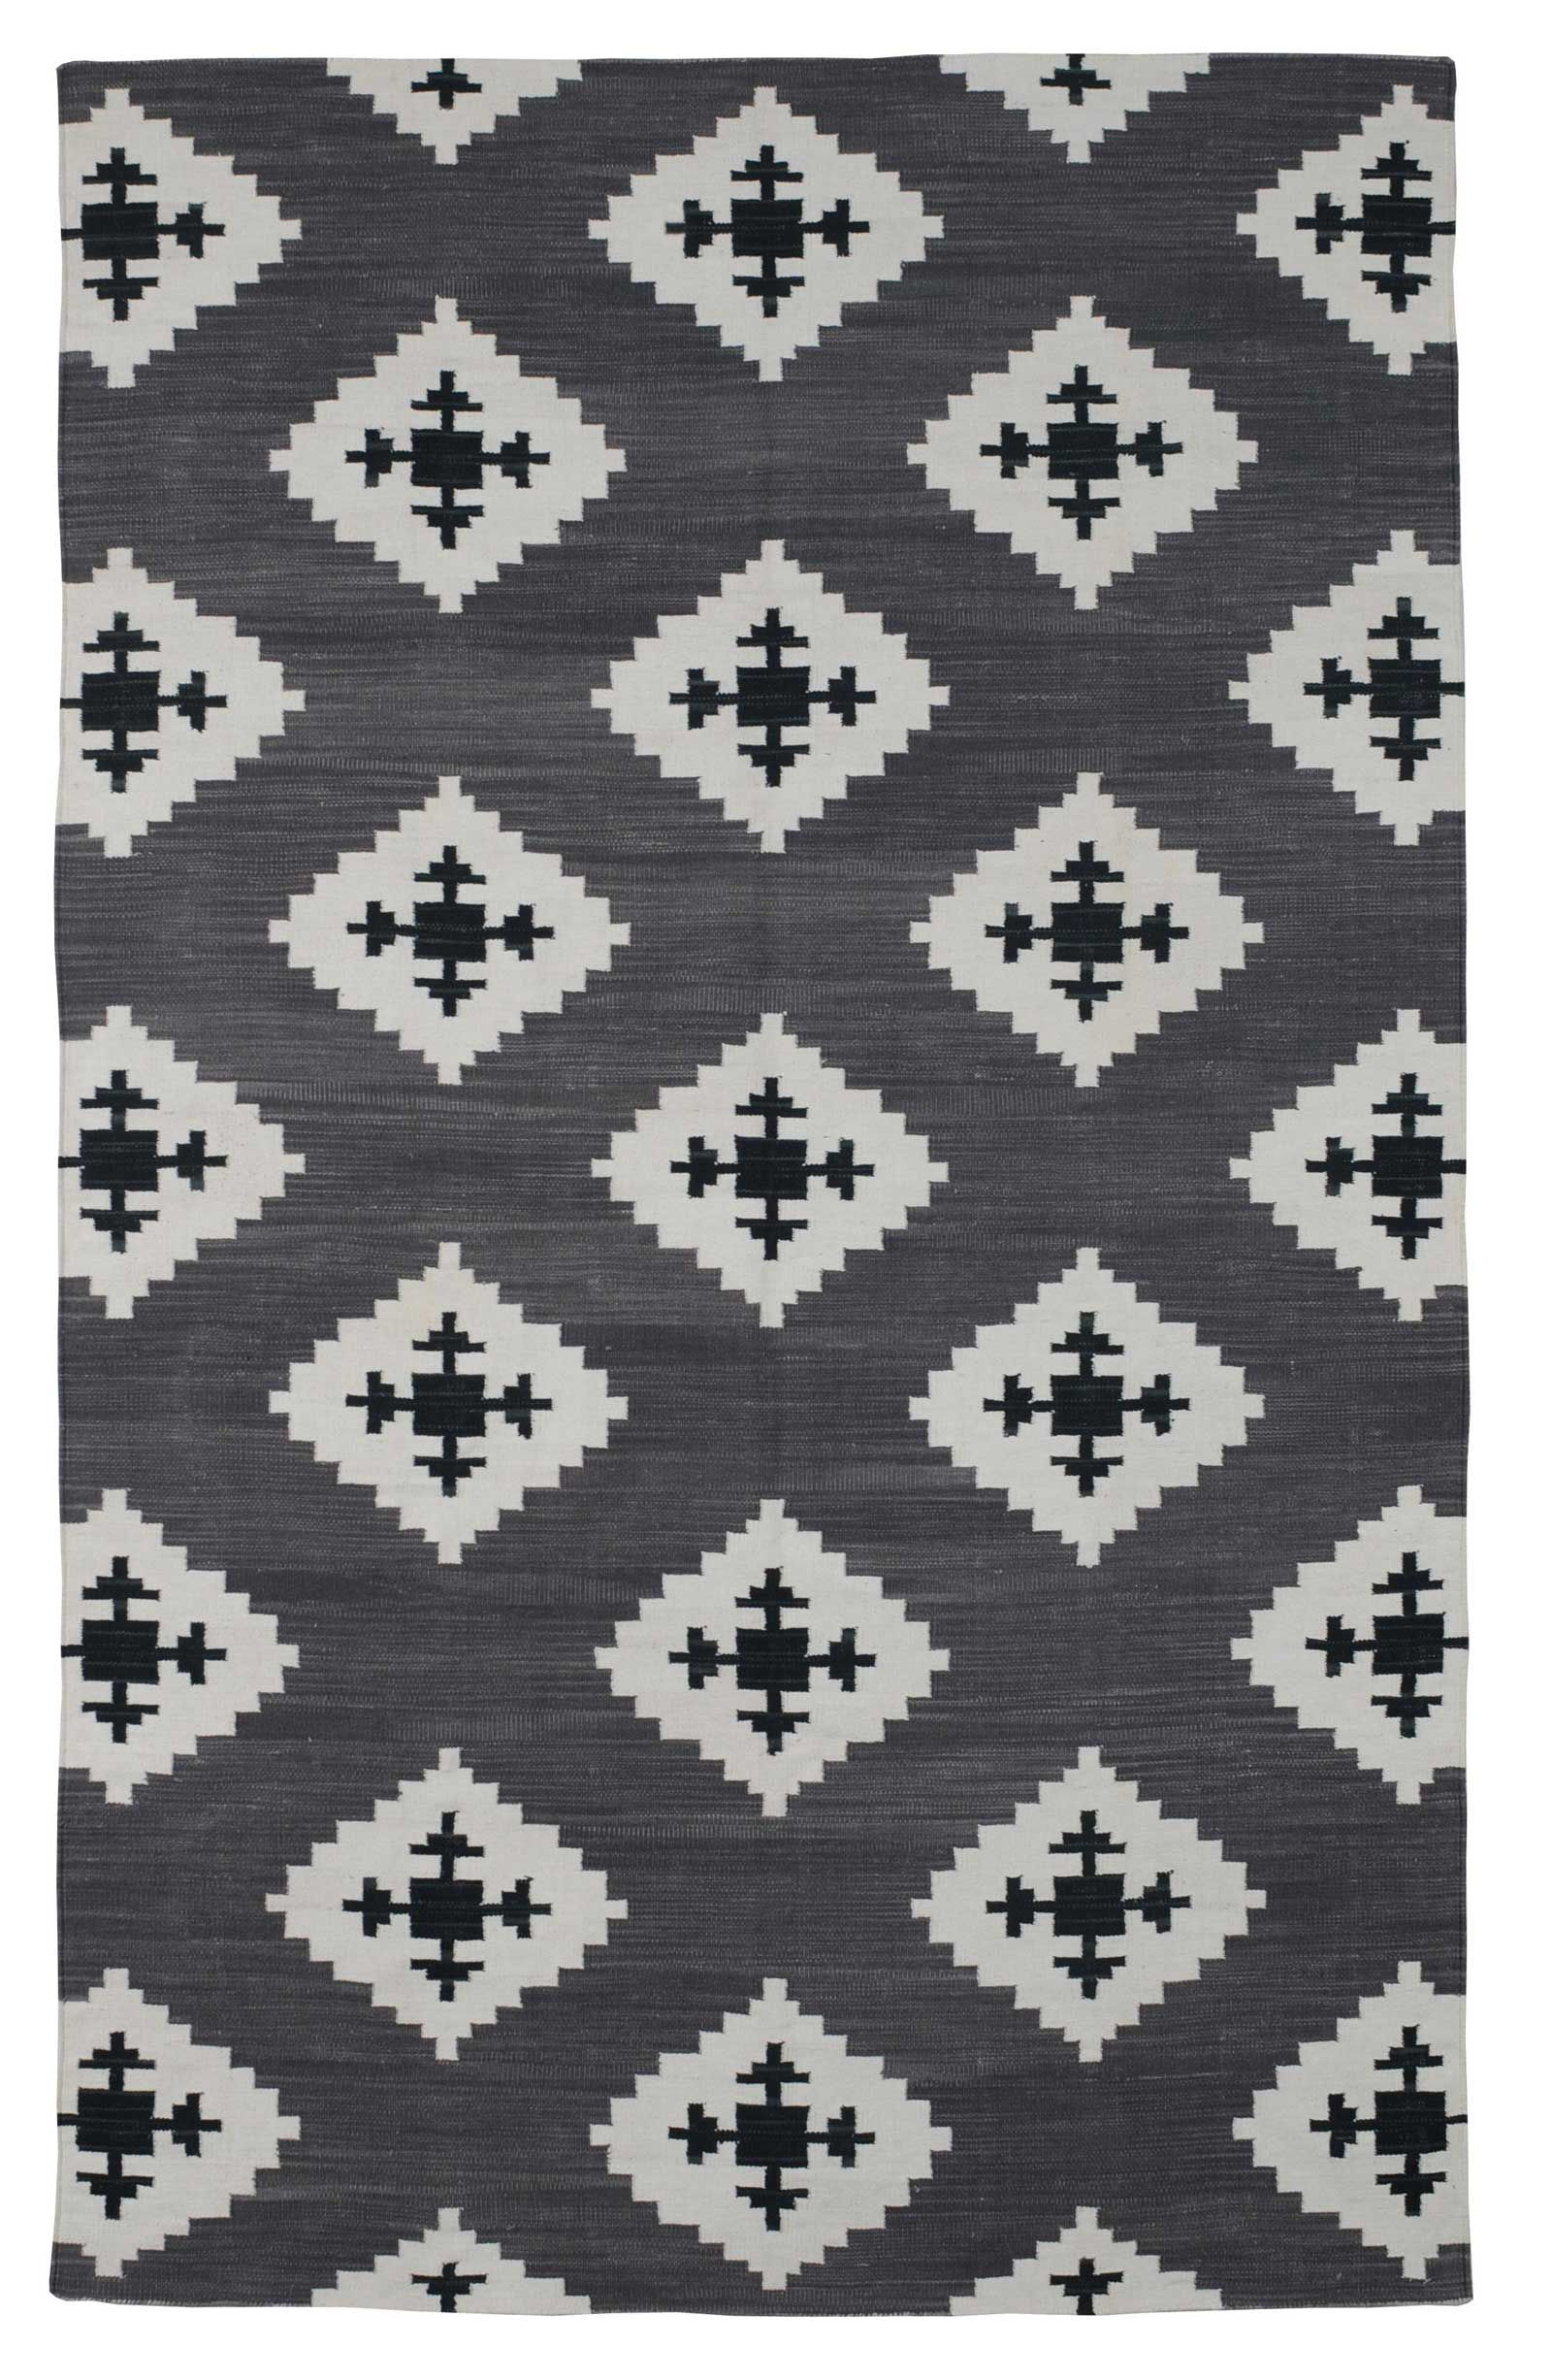 Udaipur Black By The Rug Company Cotton Flatweave